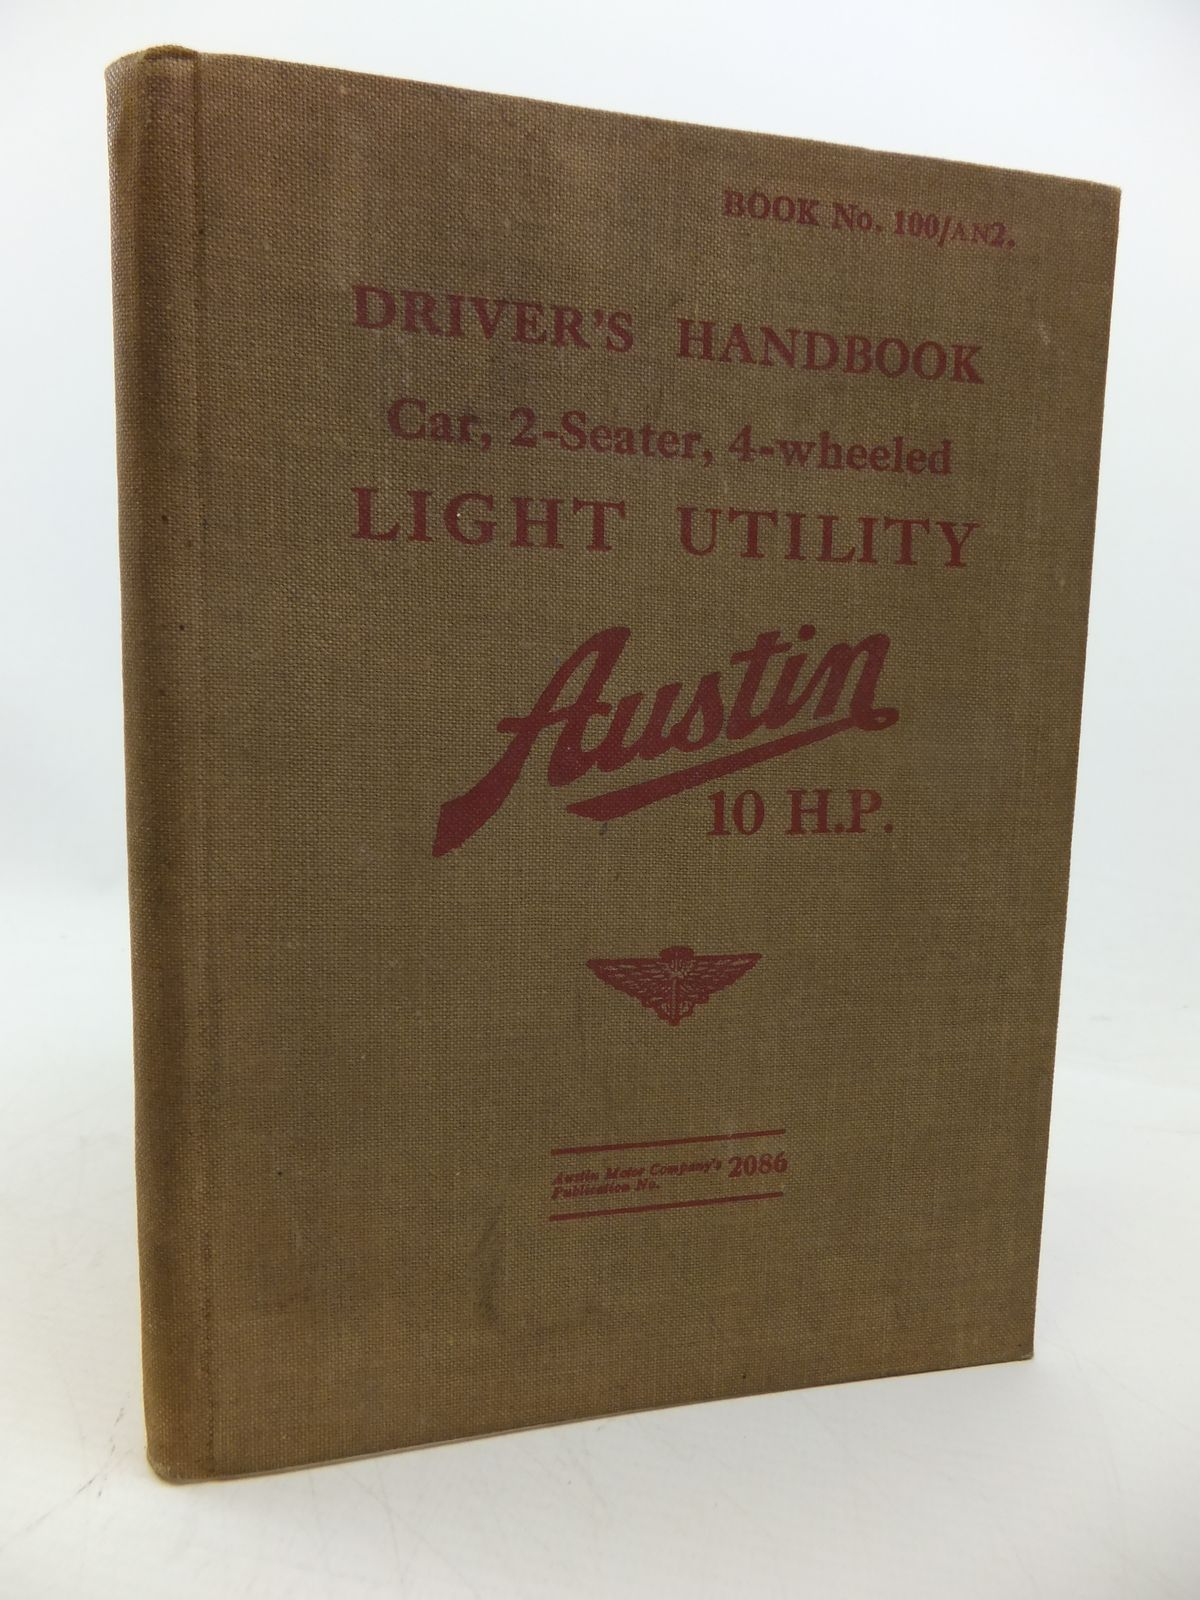 Photo of DRIVER'S HANDBOOK CAR, 2-SEATER, 4-WHEELED LIGHT UTILITY AUSTIN 10 H.P. published by The Austin Motor Company (STOCK CODE: 1808564)  for sale by Stella & Rose's Books